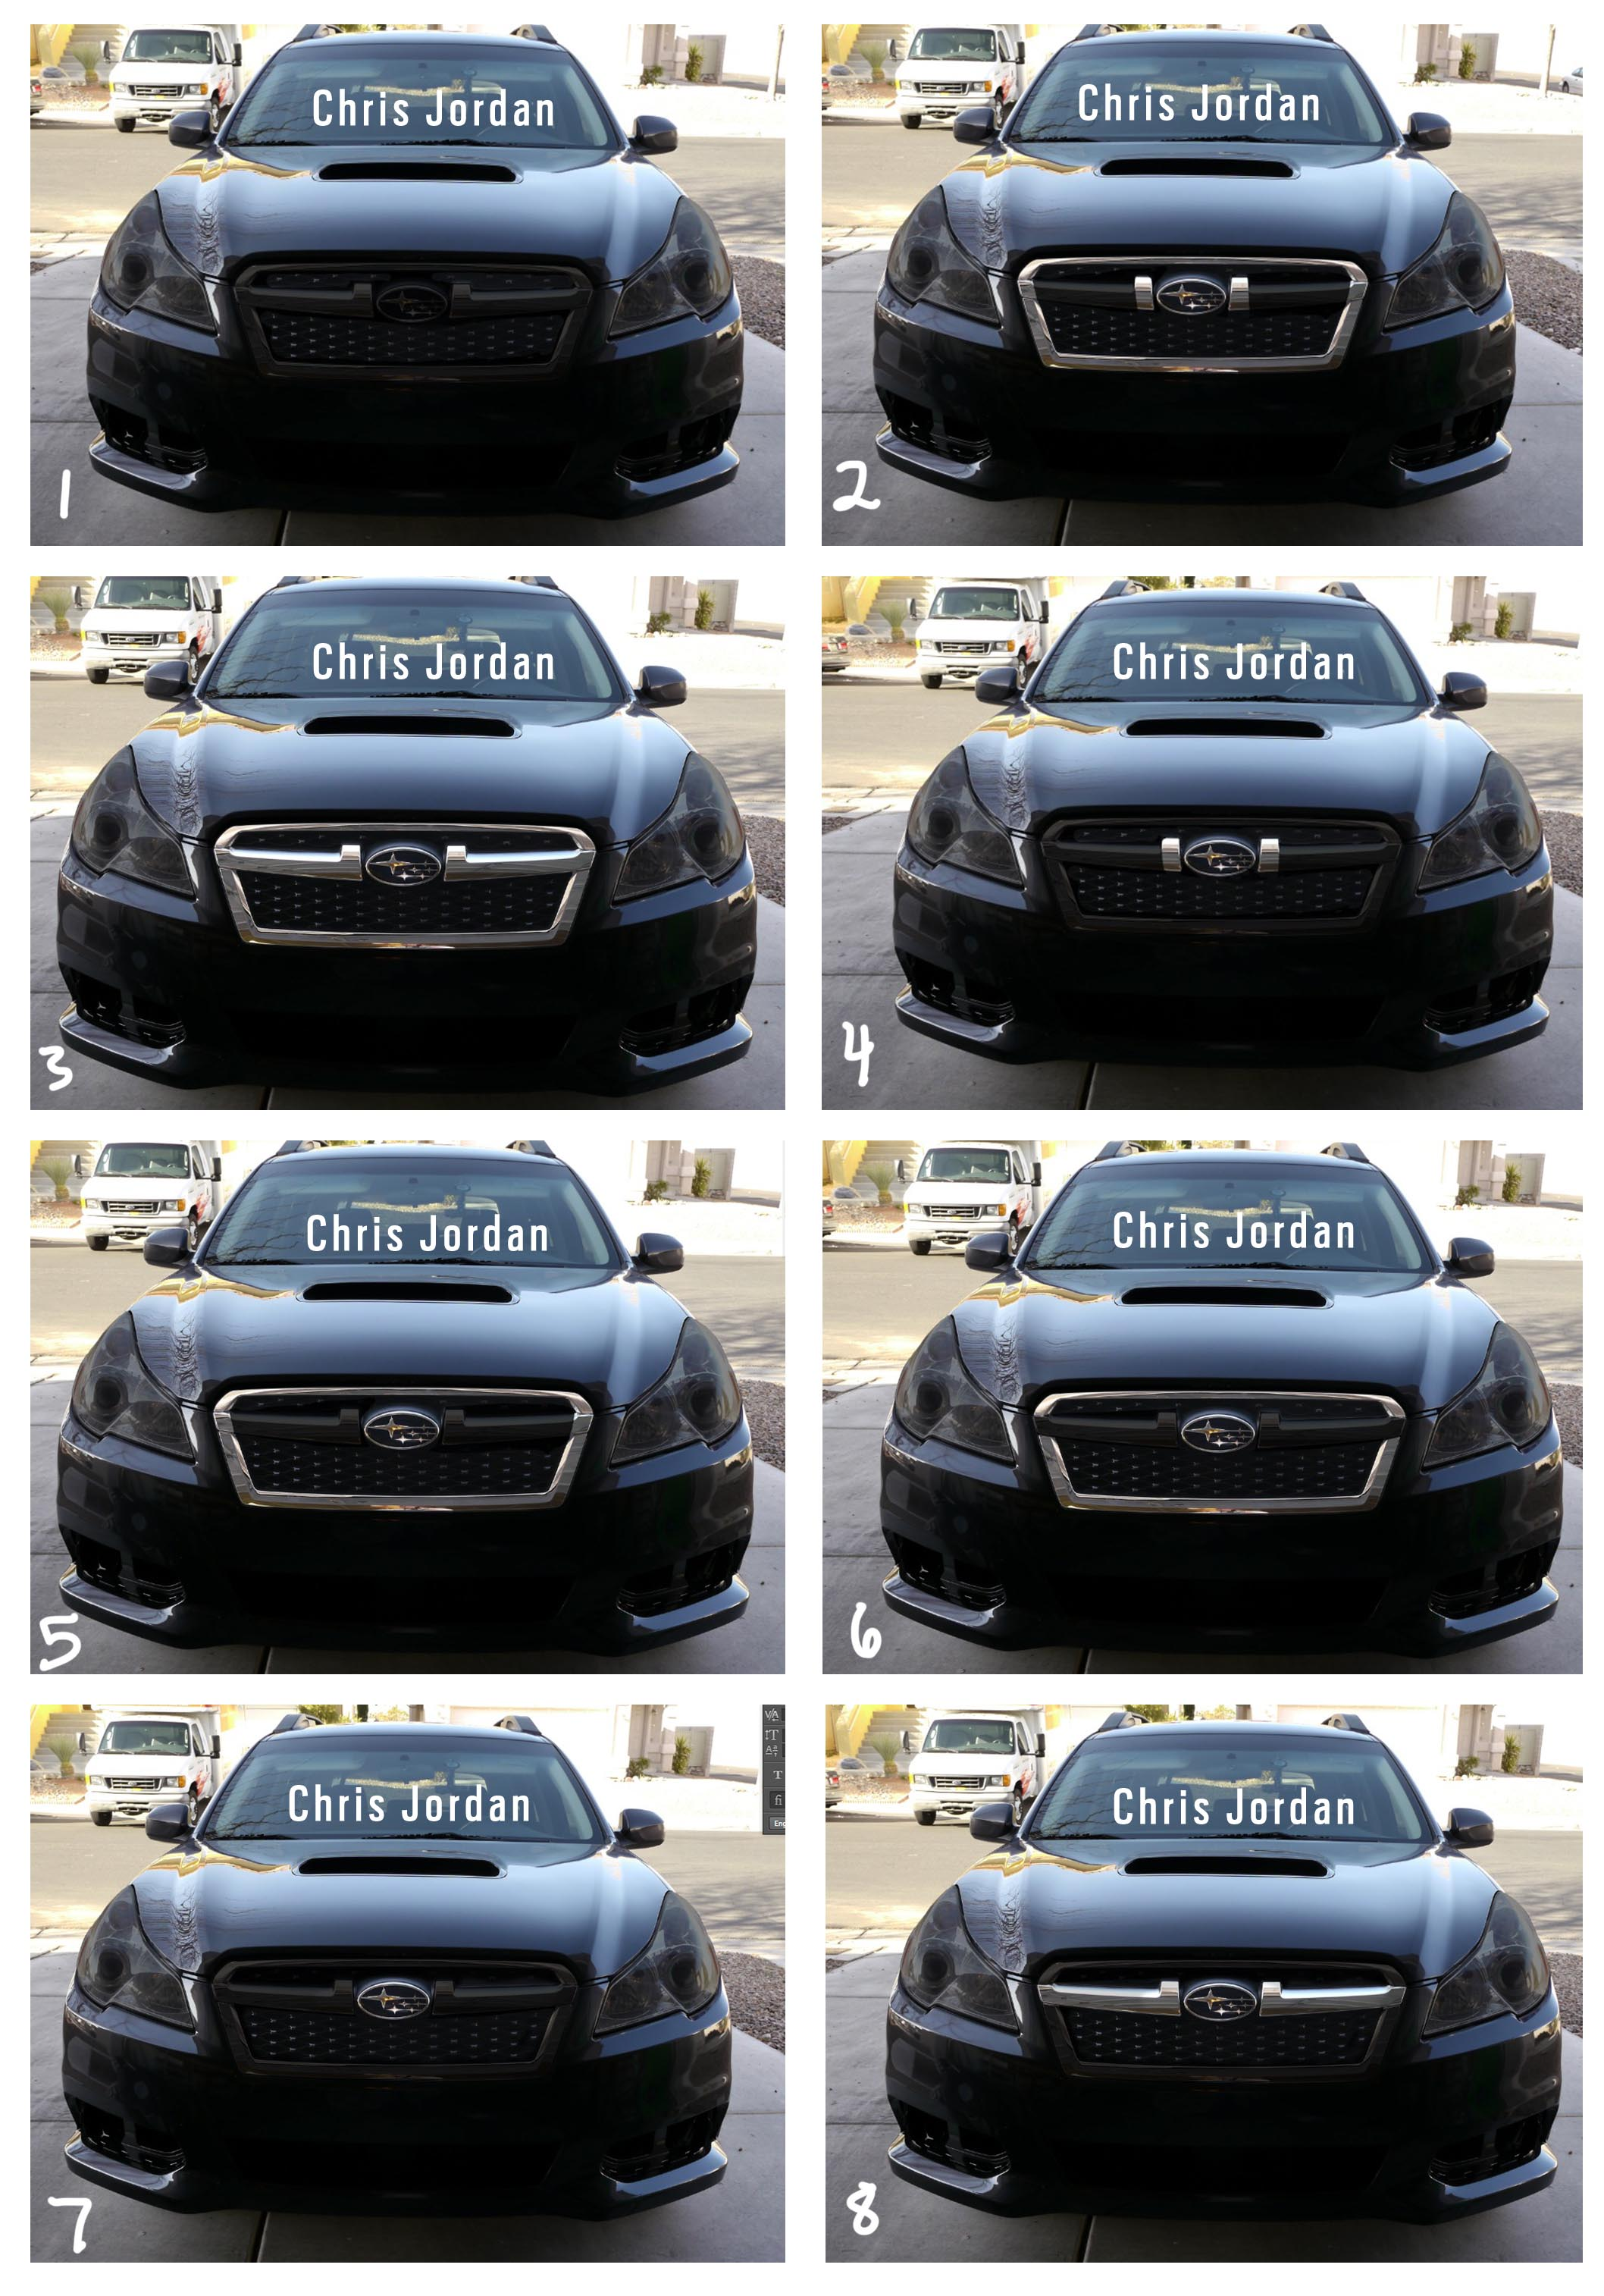 2013 Legacy front Clip on Outback Thread. - Subaru Outback ...